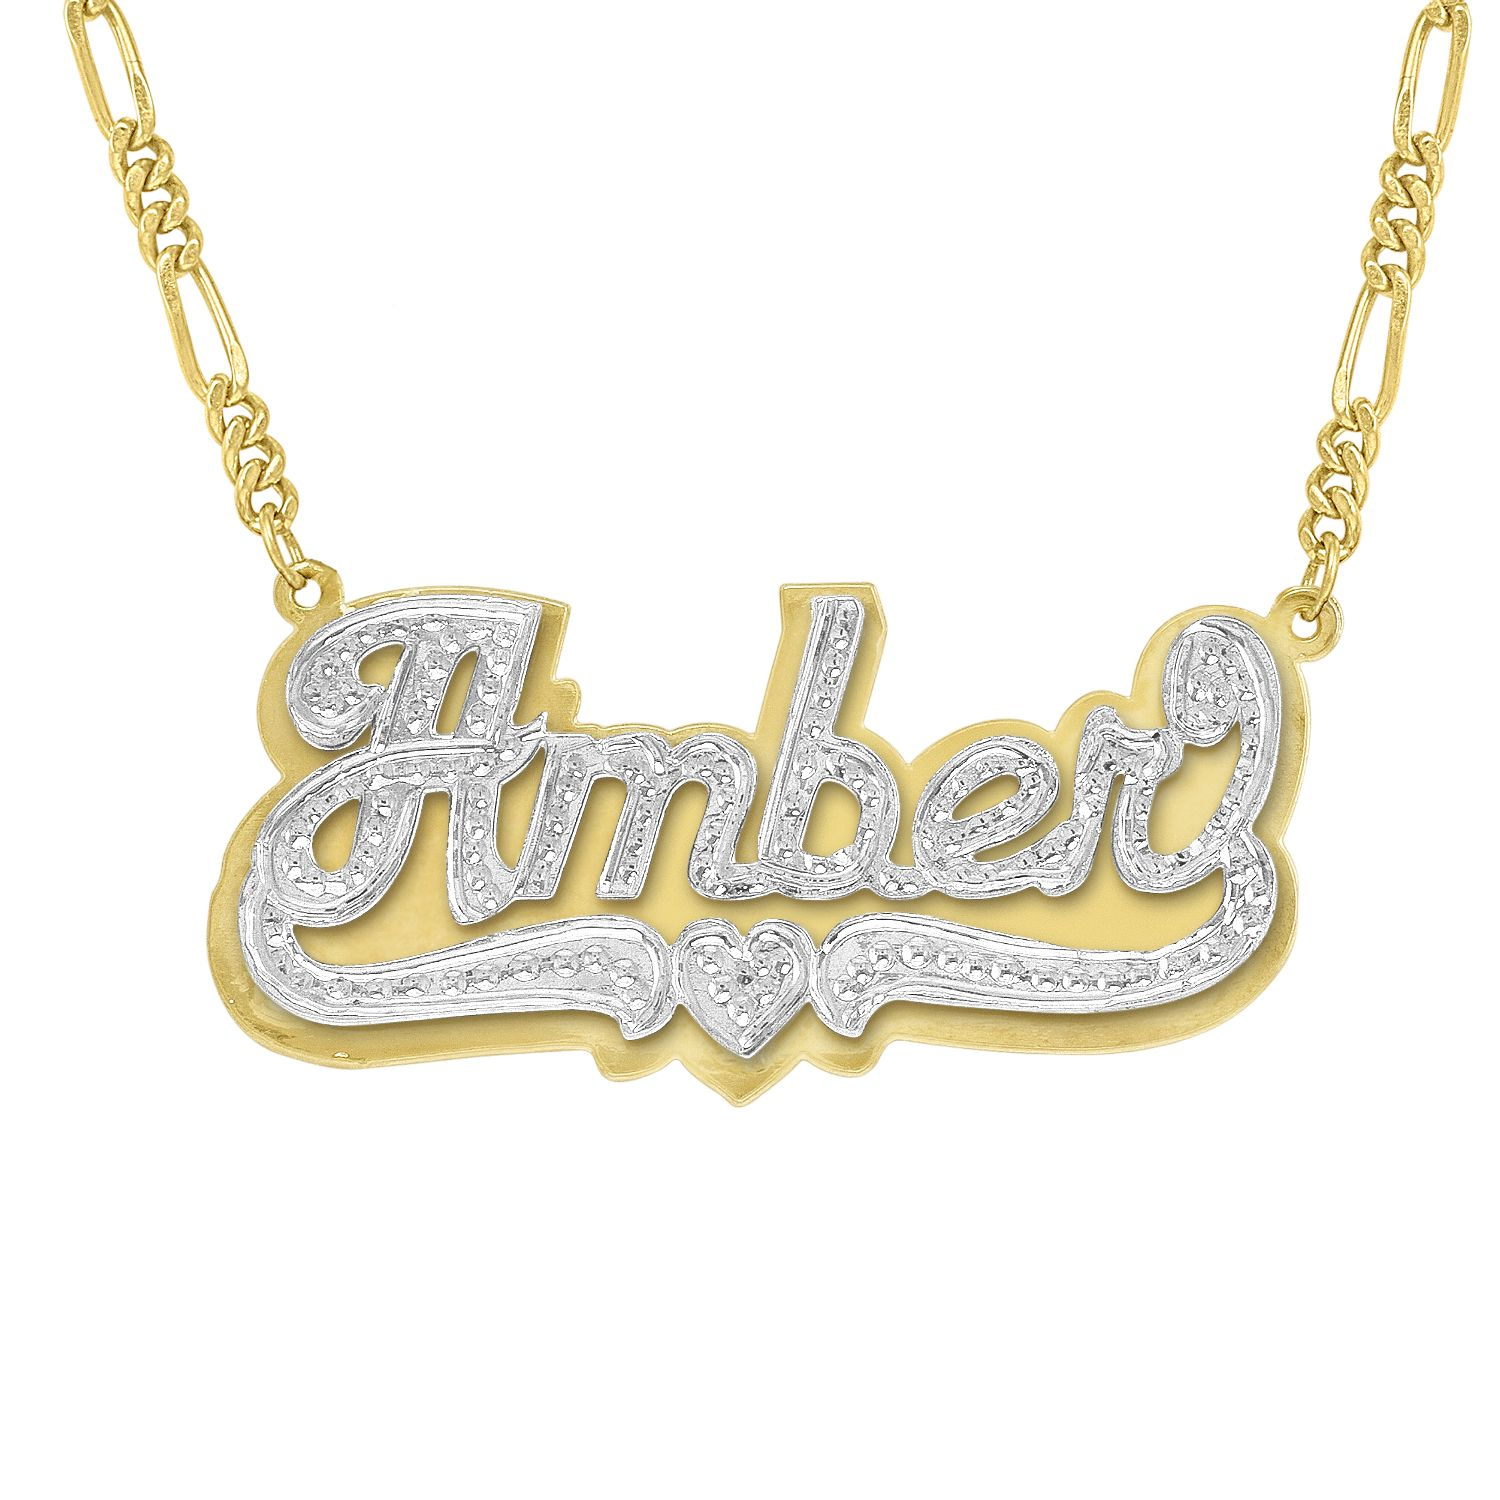 18K Gold Plated Chain With Name//My Name Chain and Name Plate Any Name Necklace Gold Plated Personalized Hand Made Jewelry